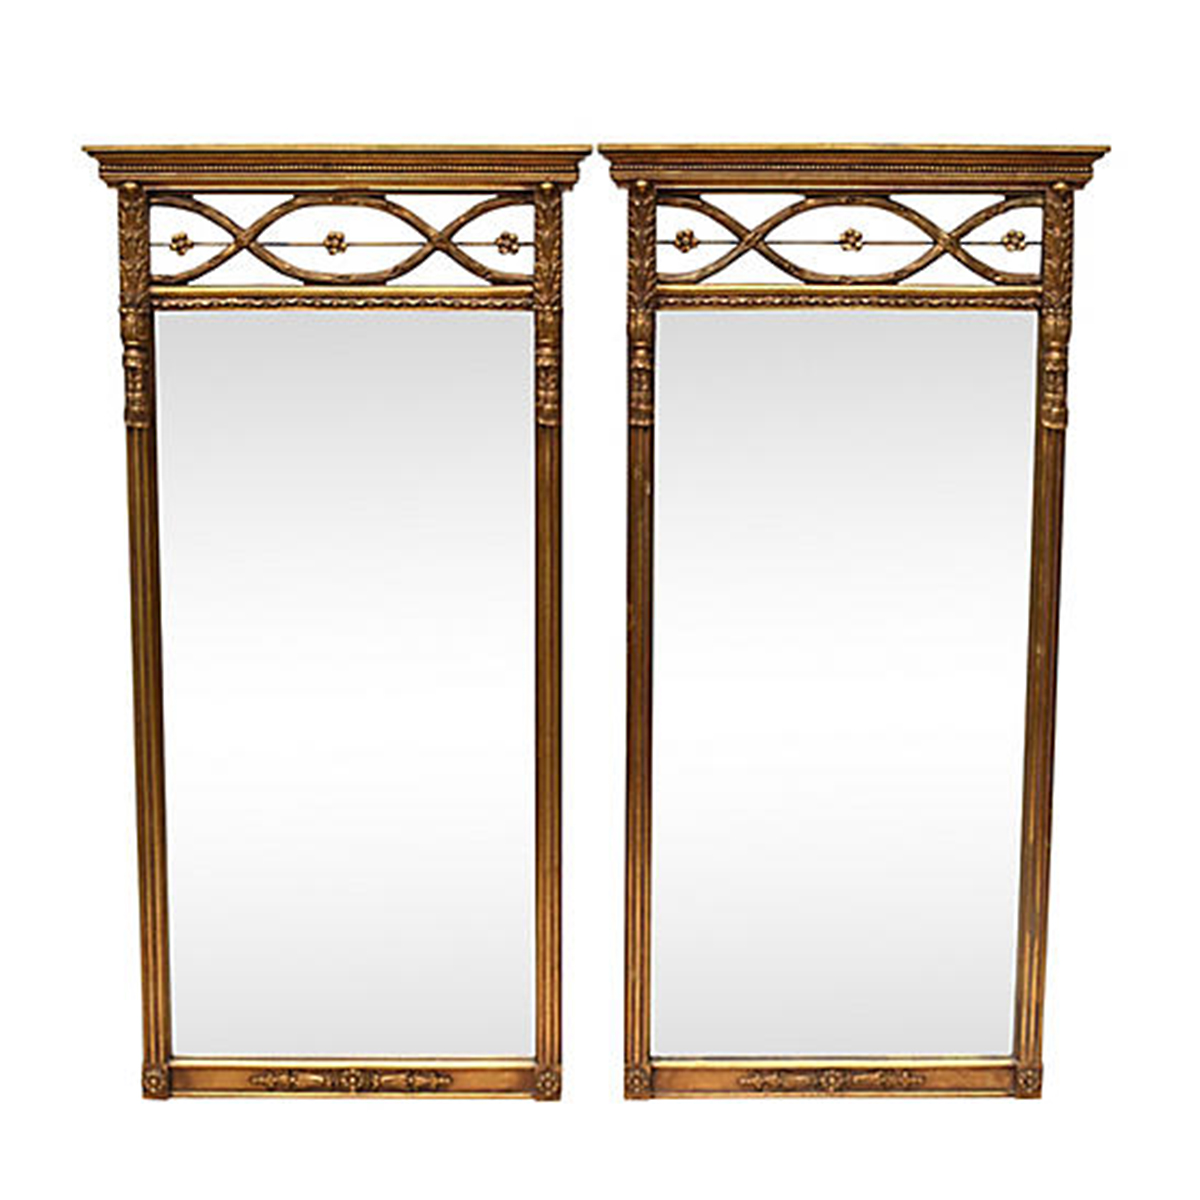 french regency mirror pair.jpg